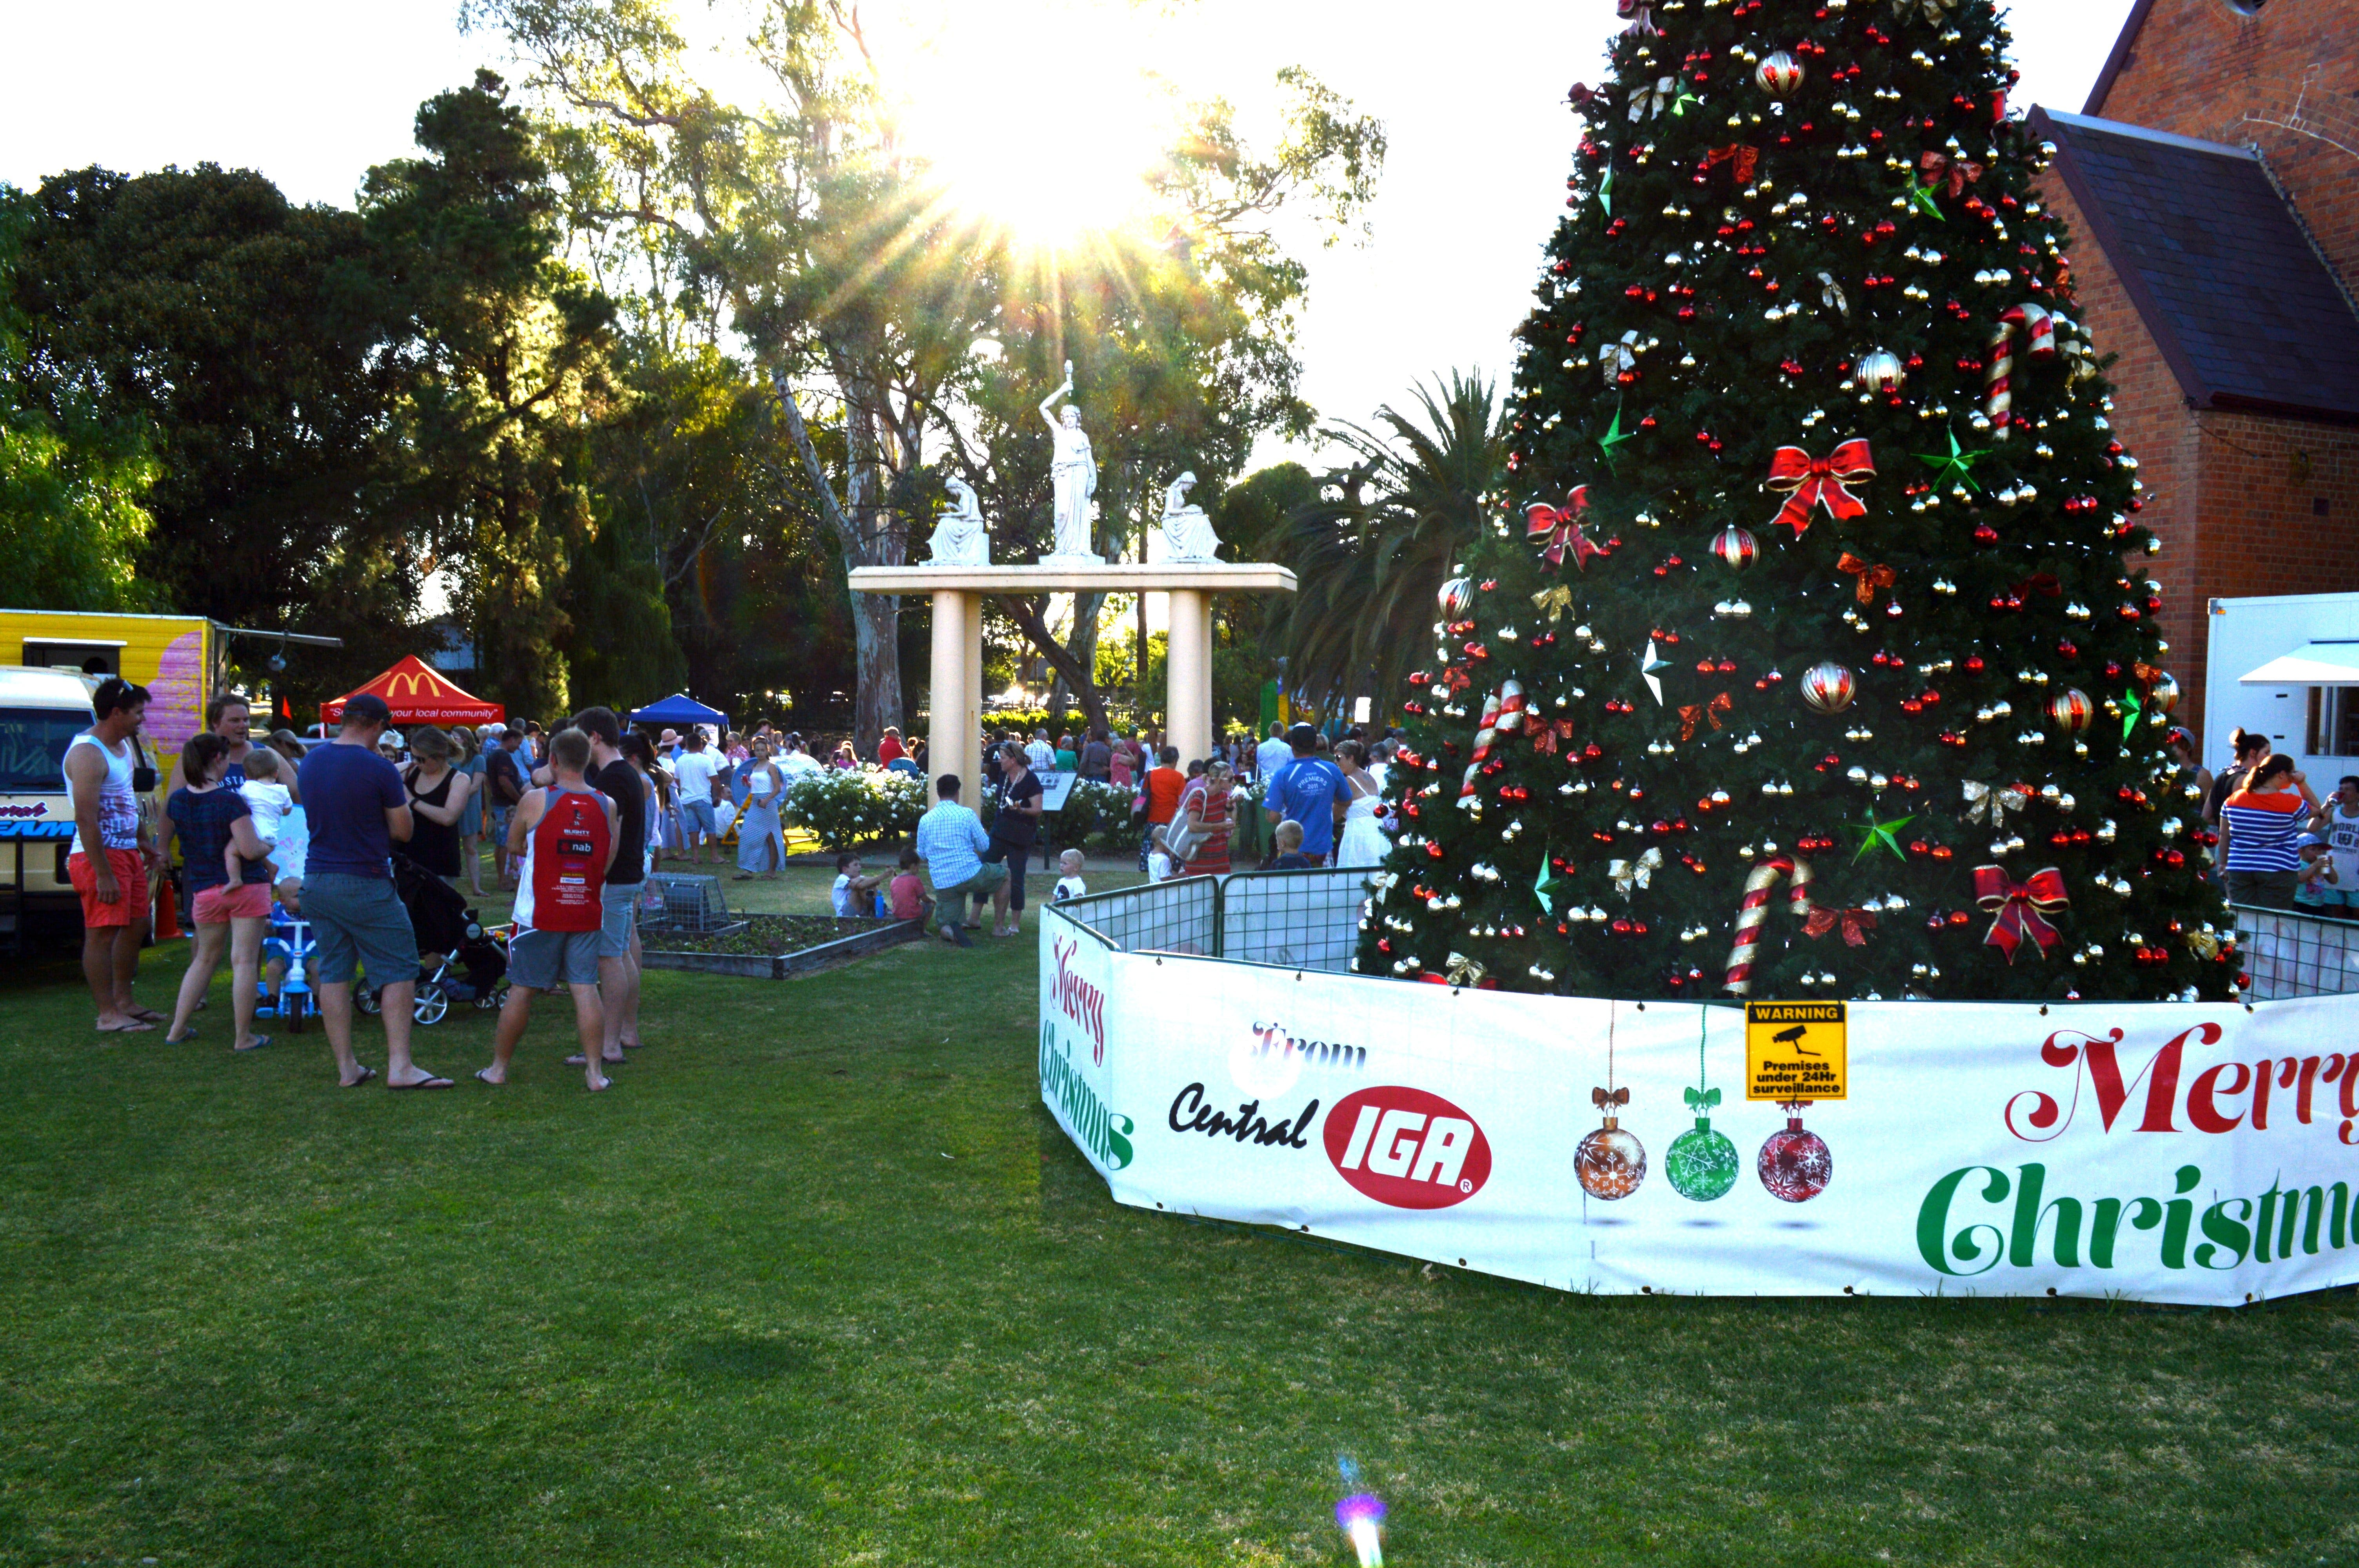 Community Christmas Party and Carols by Candlelight - Accommodation Adelaide